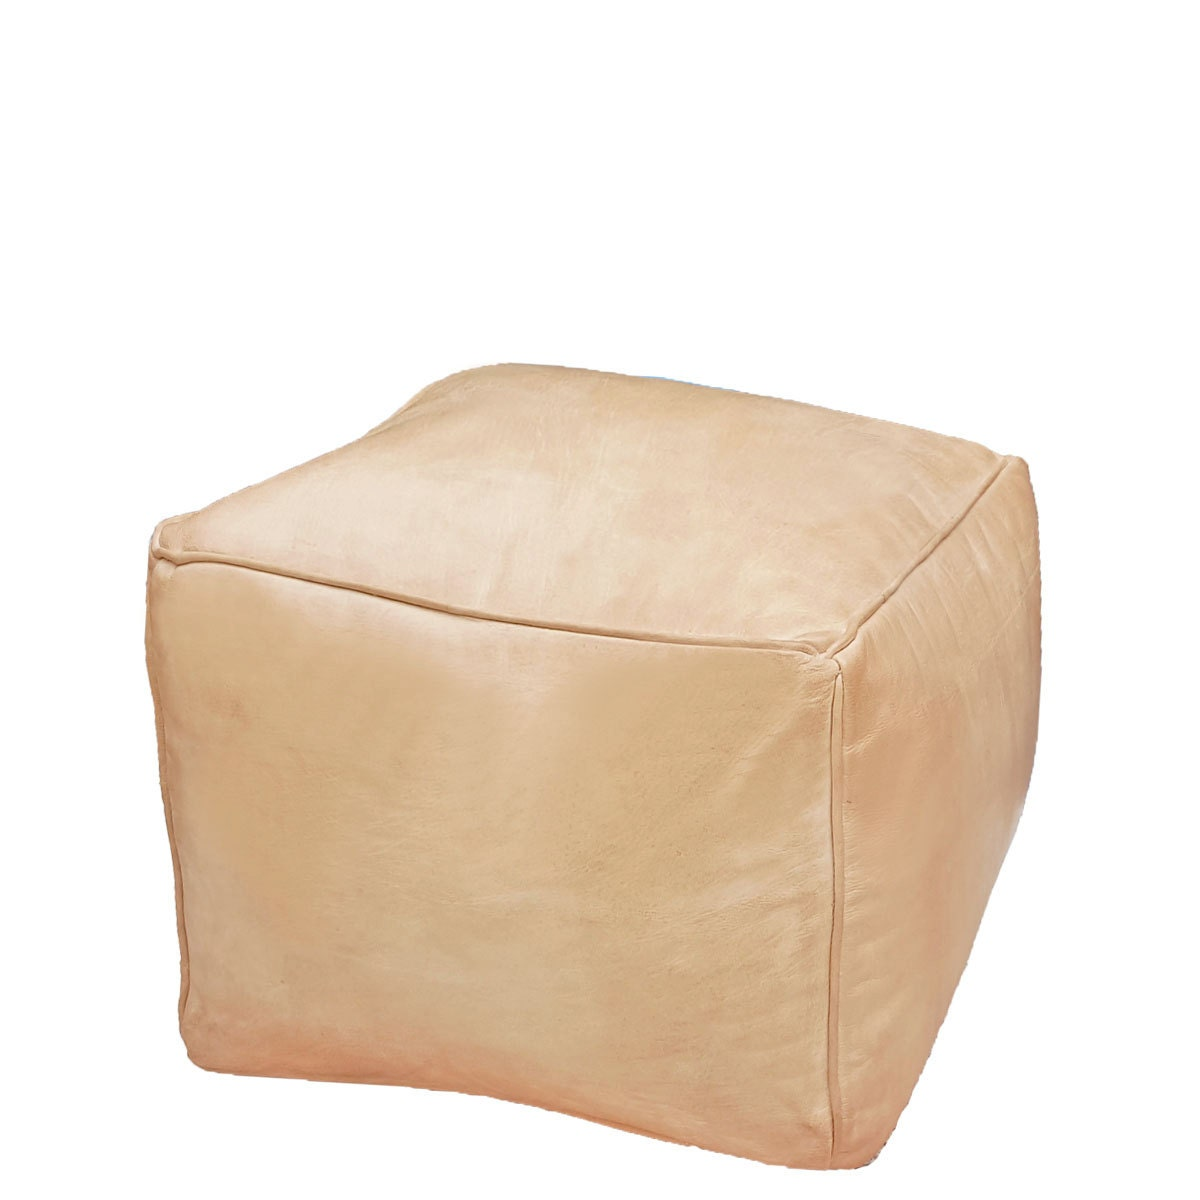 leather pouf ottoman natural leather light tan cube. Black Bedroom Furniture Sets. Home Design Ideas